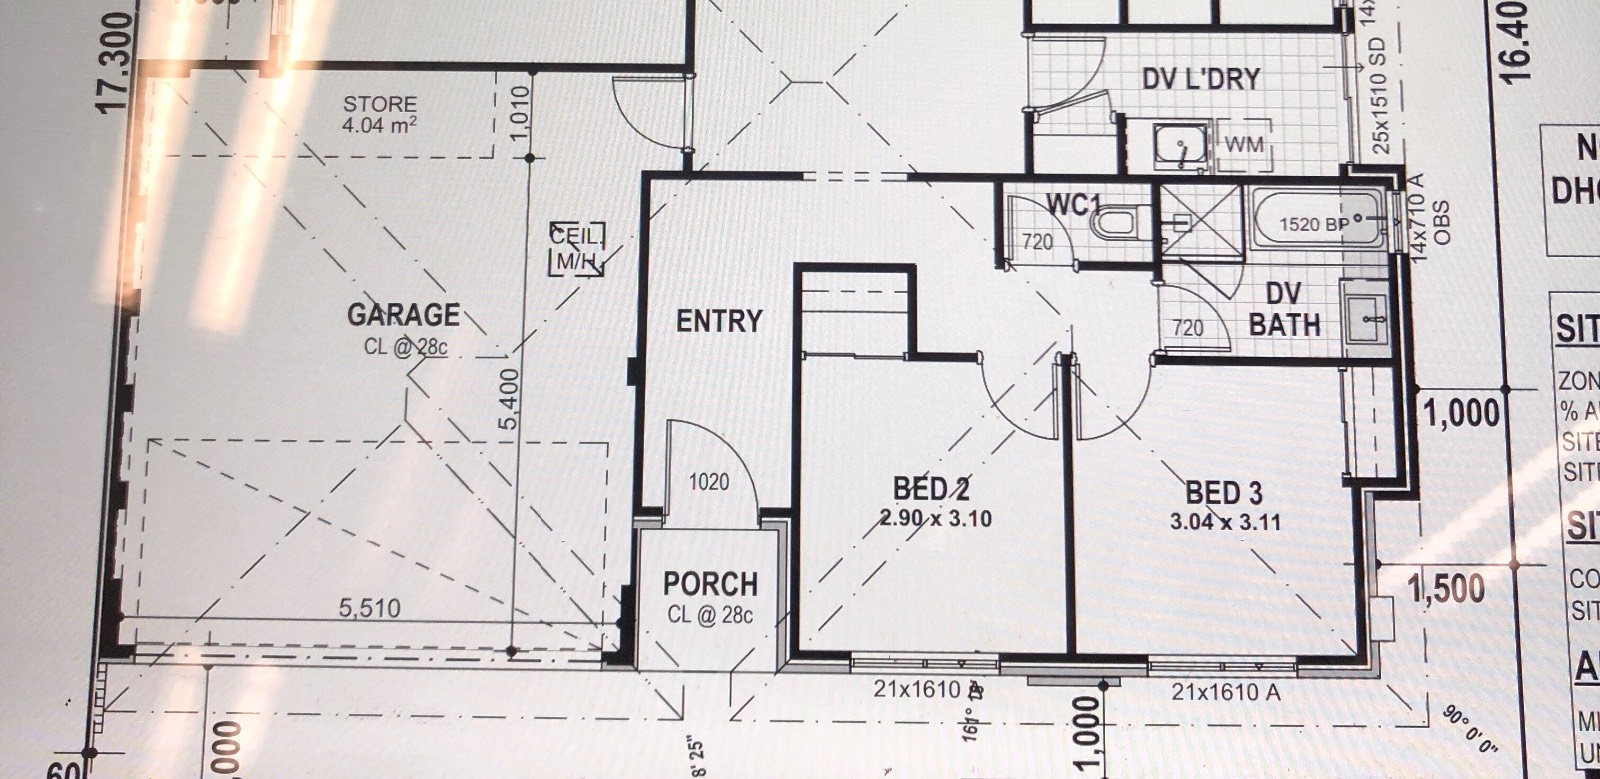 View Topic Is My Potential Double Garage Build Too Small Home Renovation Building Forum